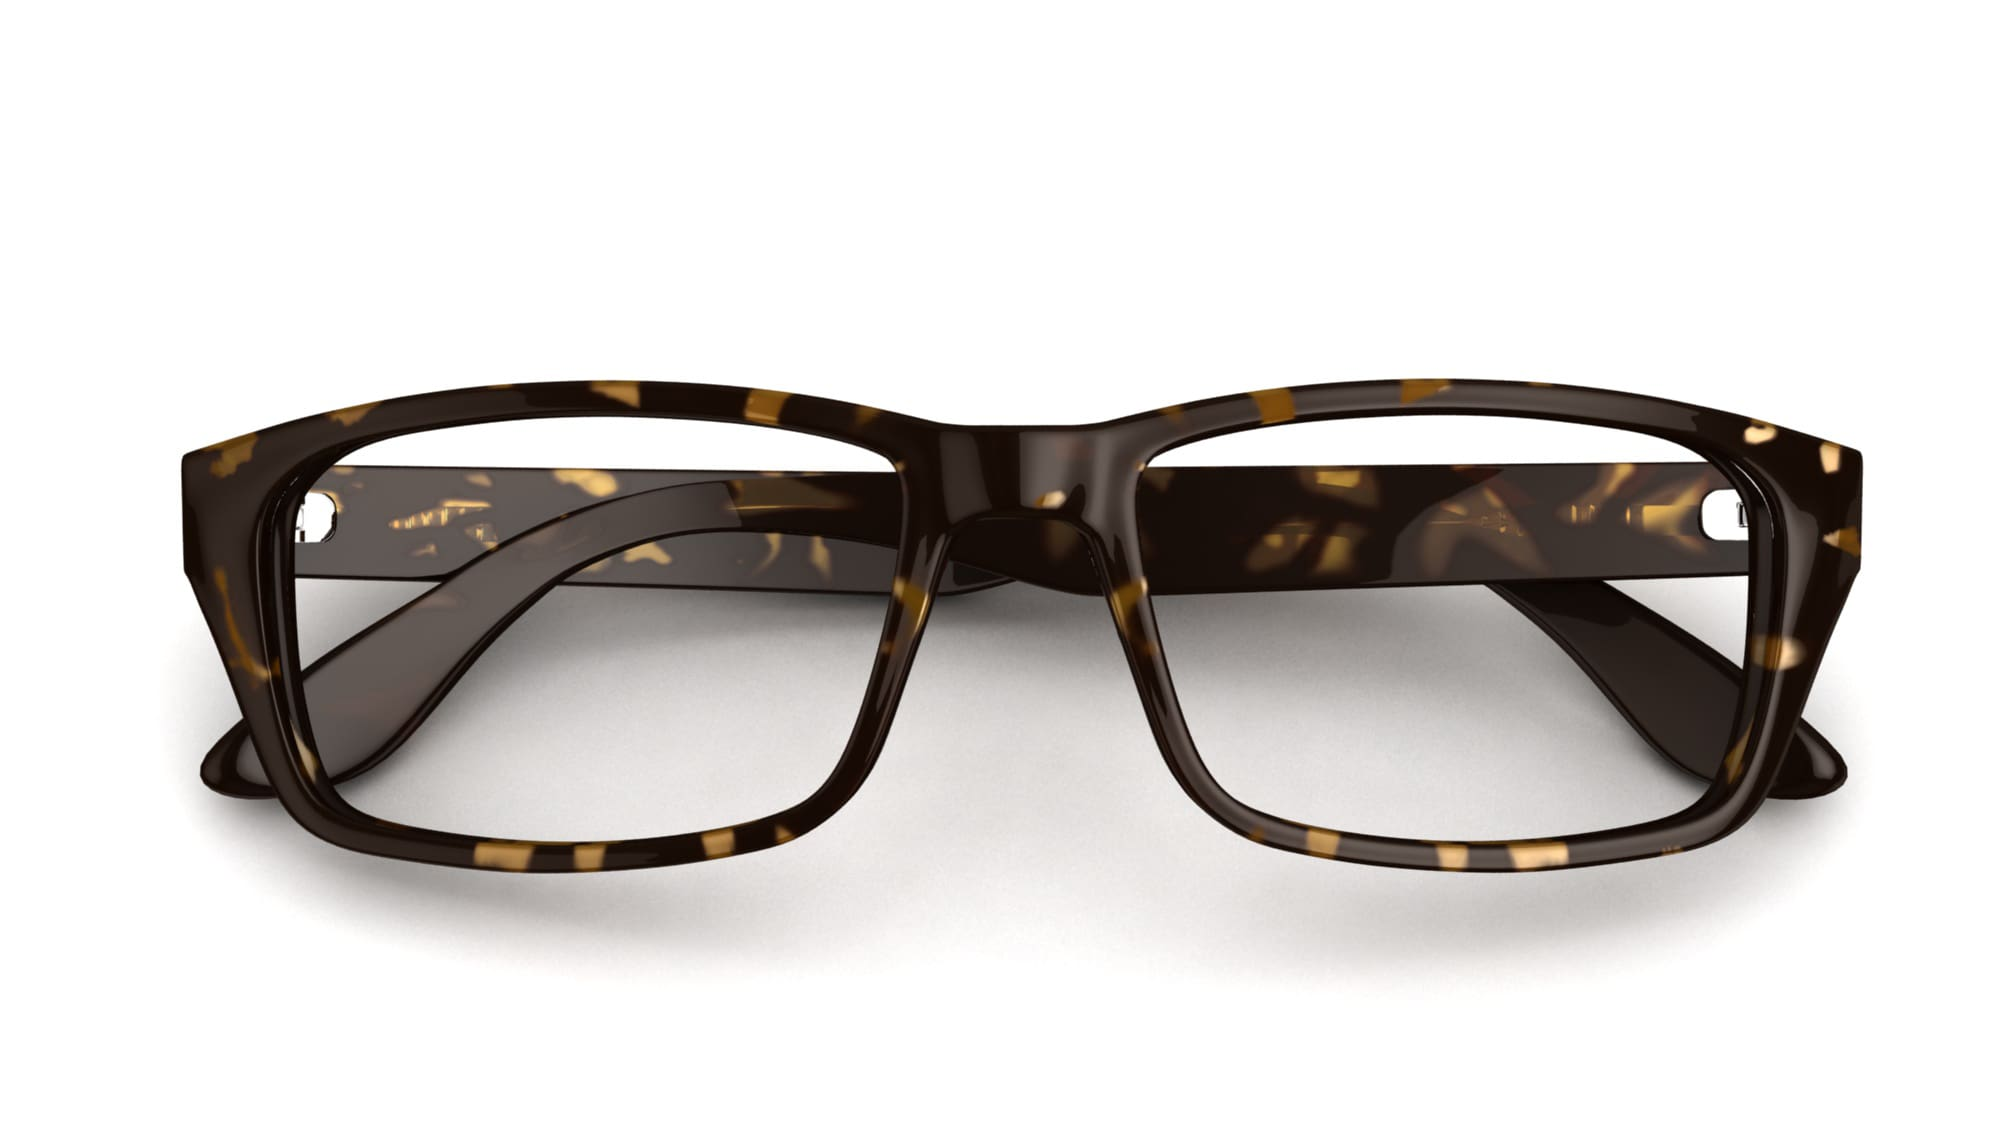 Roxy Glasses Frames Specsavers - Page 4 - Frame Design & Reviews ✓